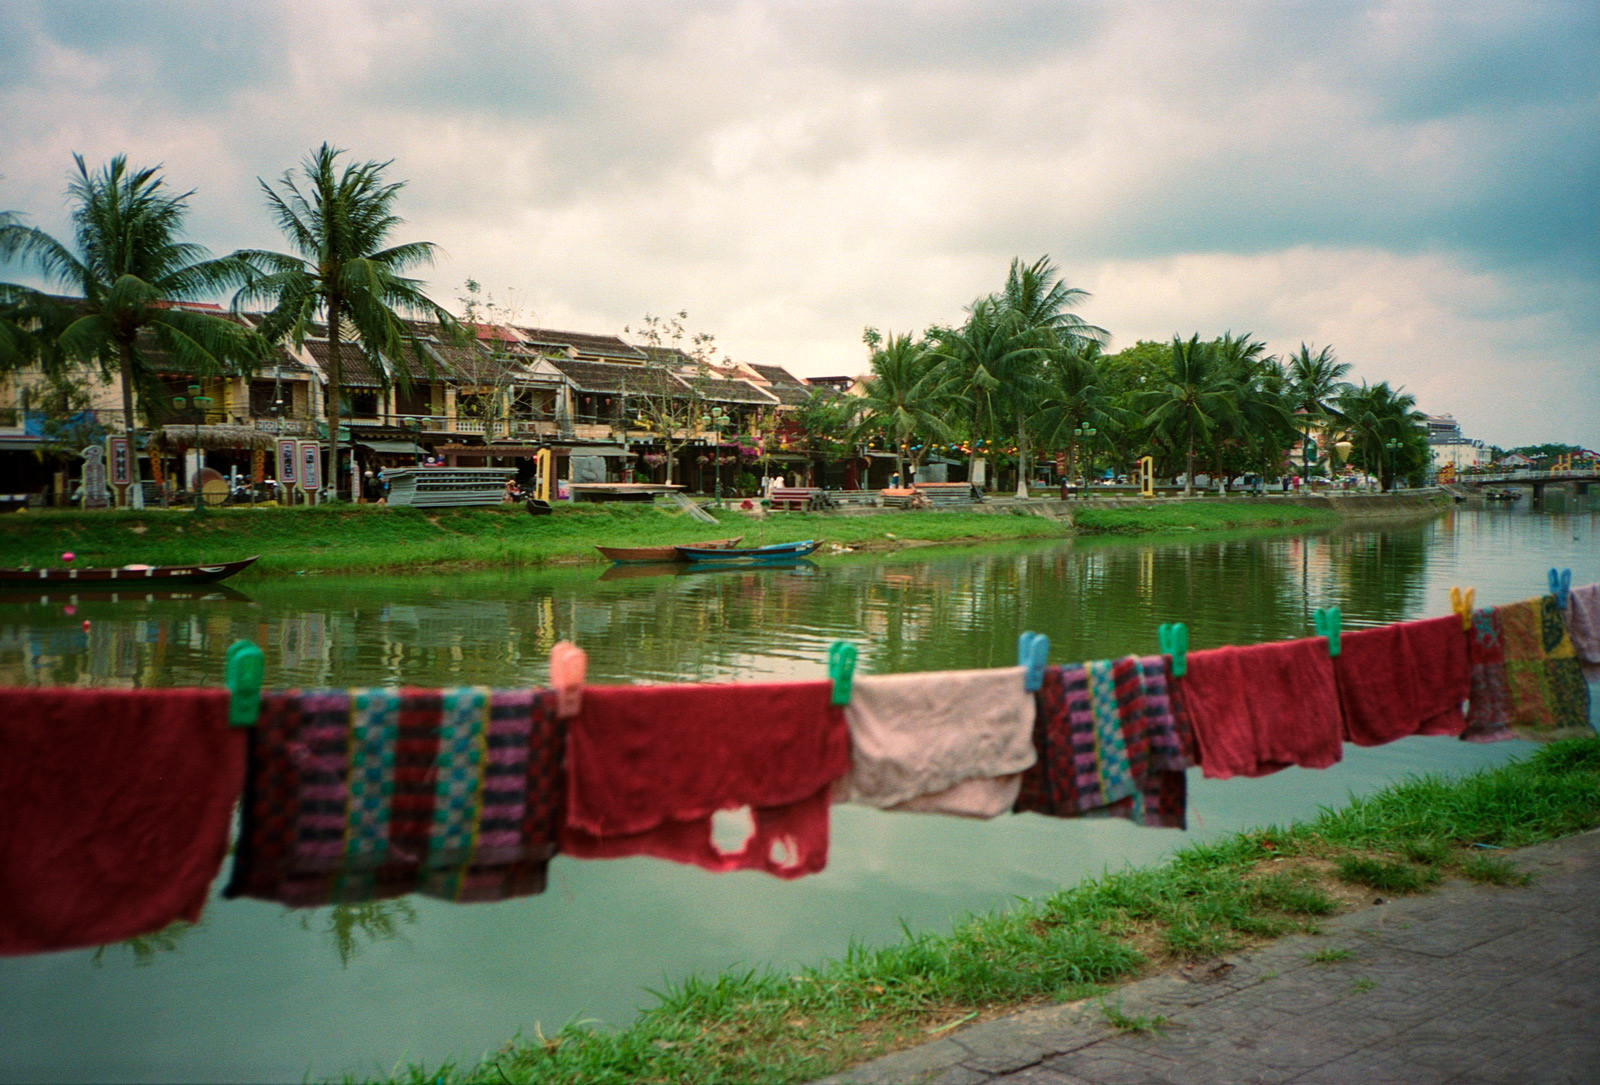 Clothing on the washing line, along the riverfront, Thu Bon River, Hoi An Vietnam,  Eastern Travels, photography by ioannis koussertari